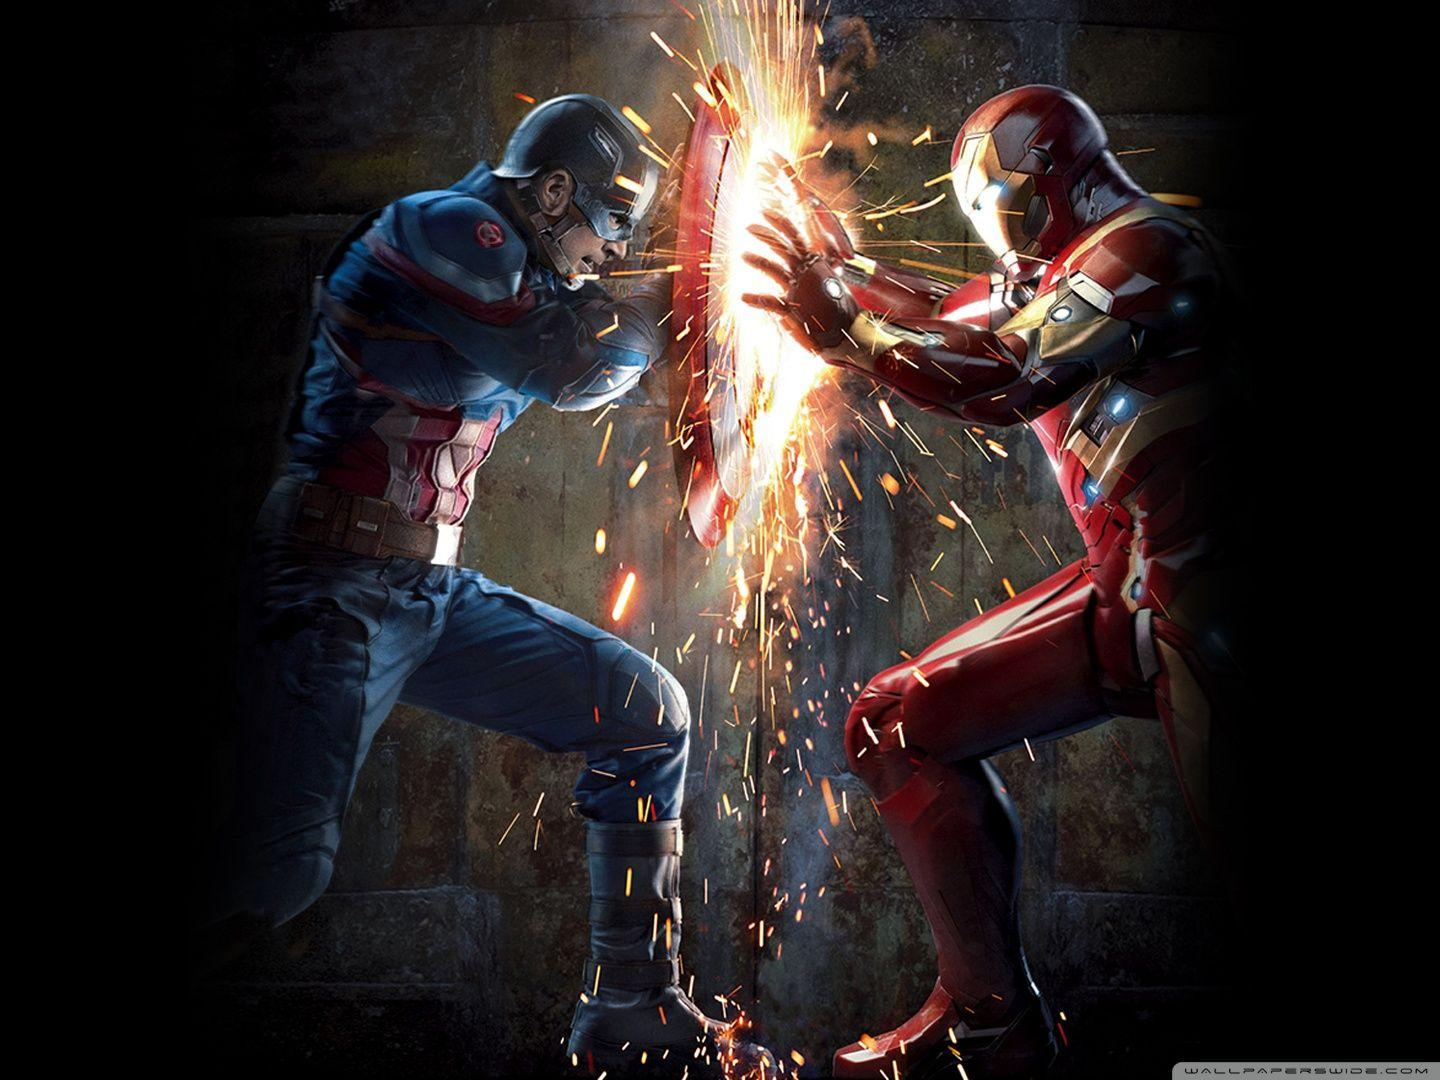 Iron man vs captain america wallpapers wallpaper cave - Best war wallpapers hd ...